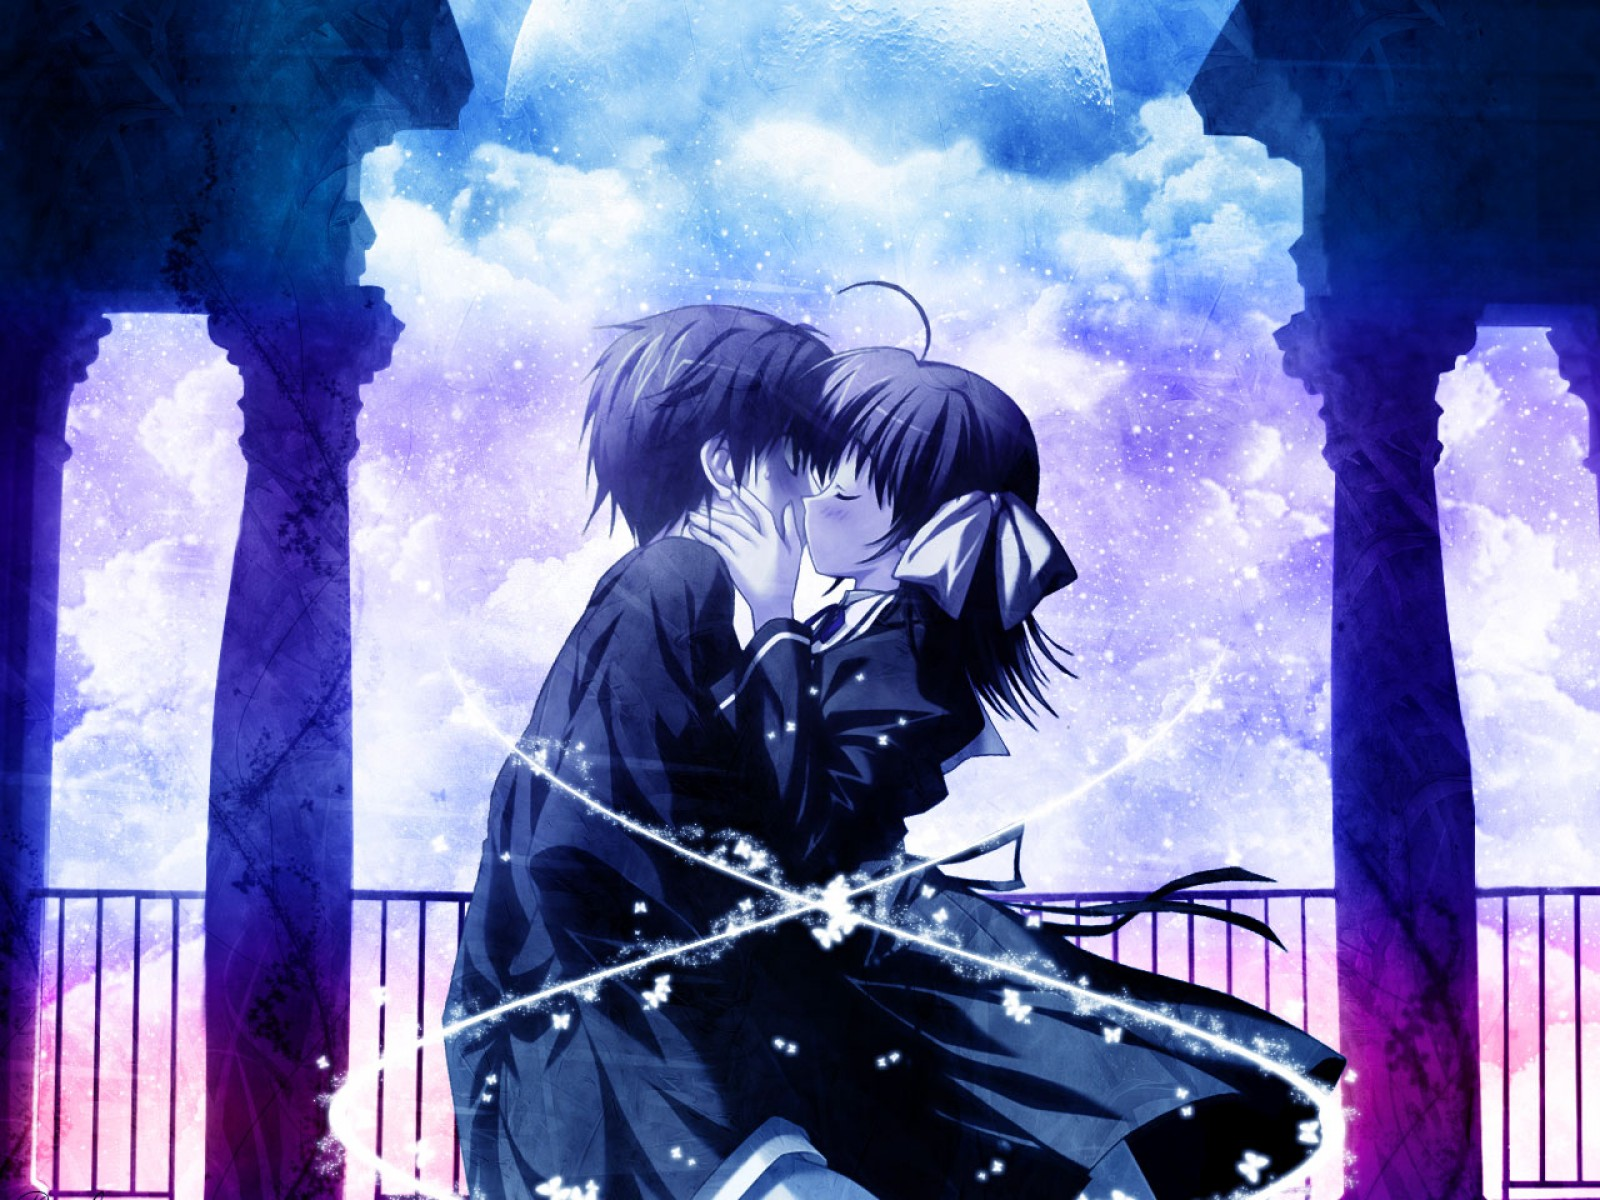 Anime Love Wallpapers: Best Profile Pictures: Love And Anime